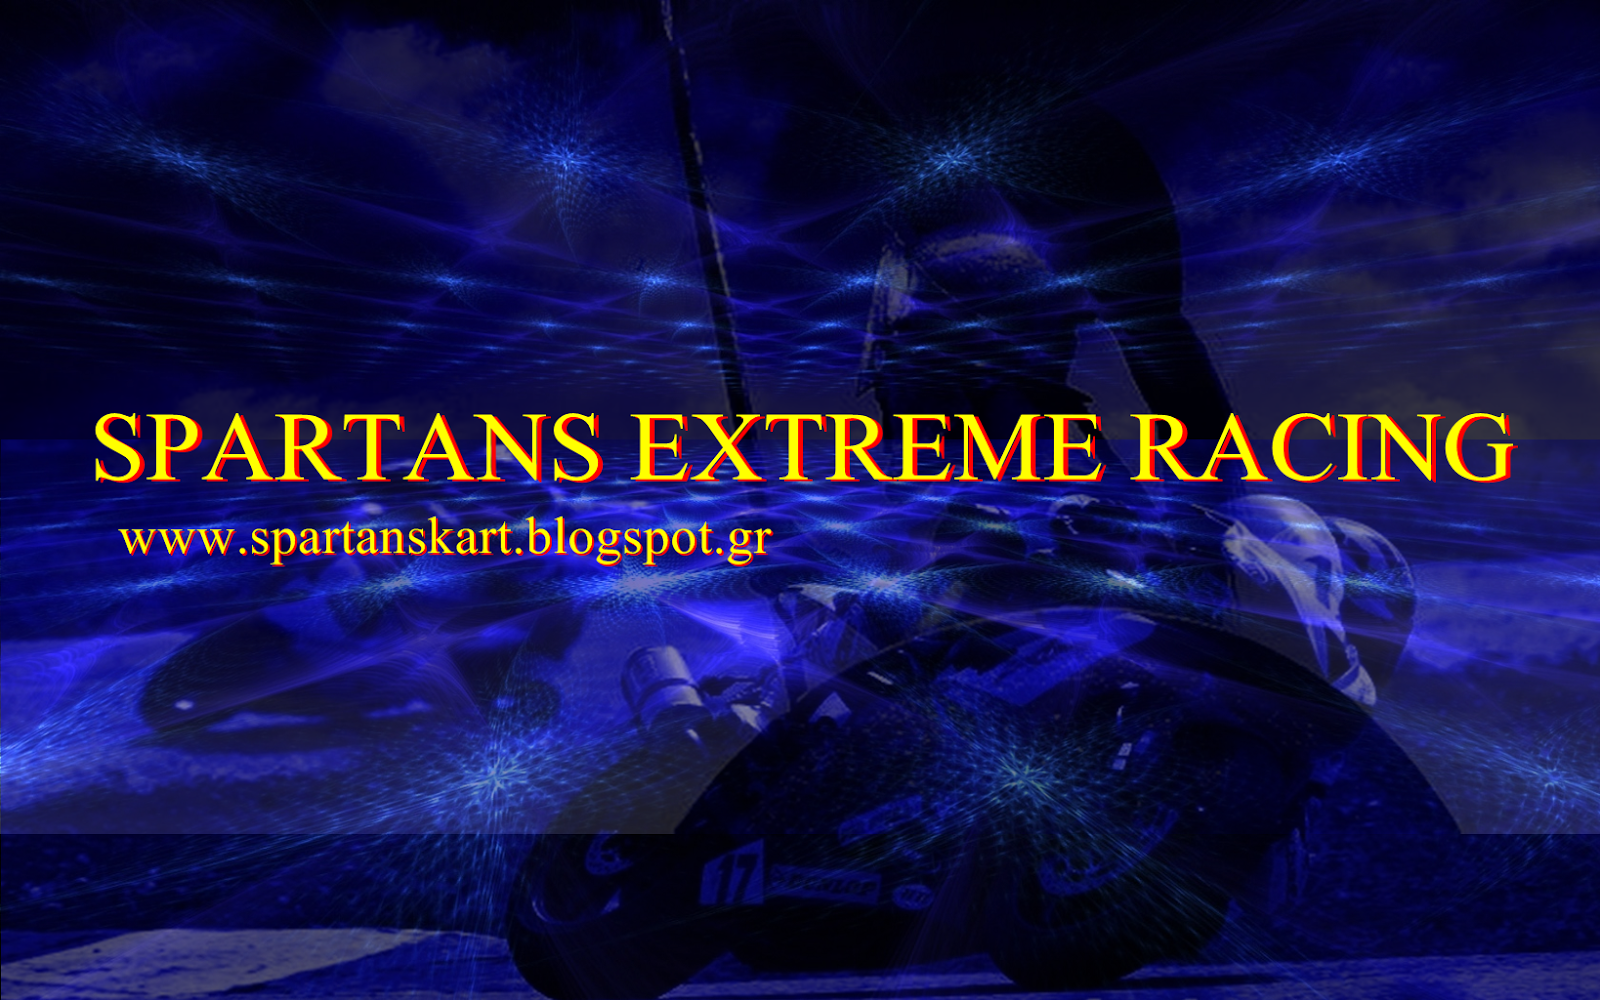 SPARTANS EXTREME RACING